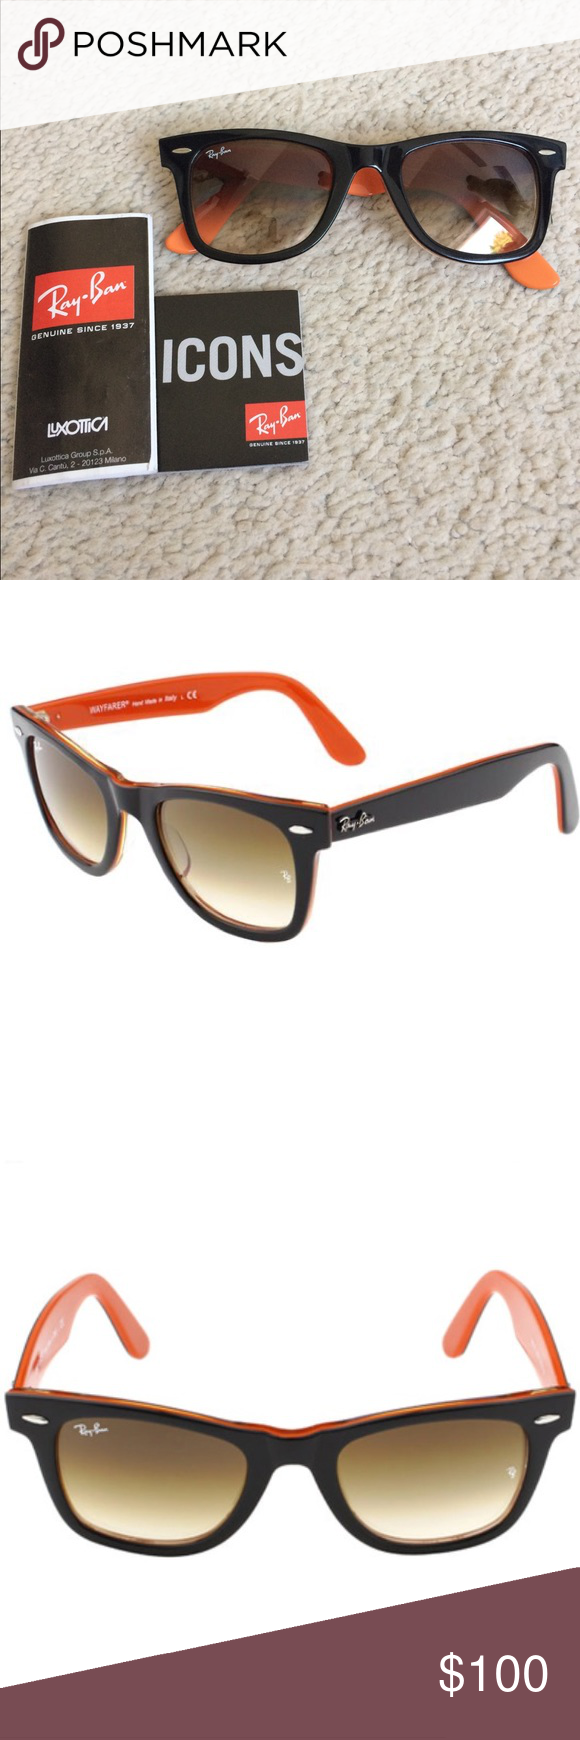 Ray Ban Orange And Black Wayfarer Sunglasses Black Wayfarer Sunglasses Black Wayfarer Wayfarer Sunglasses